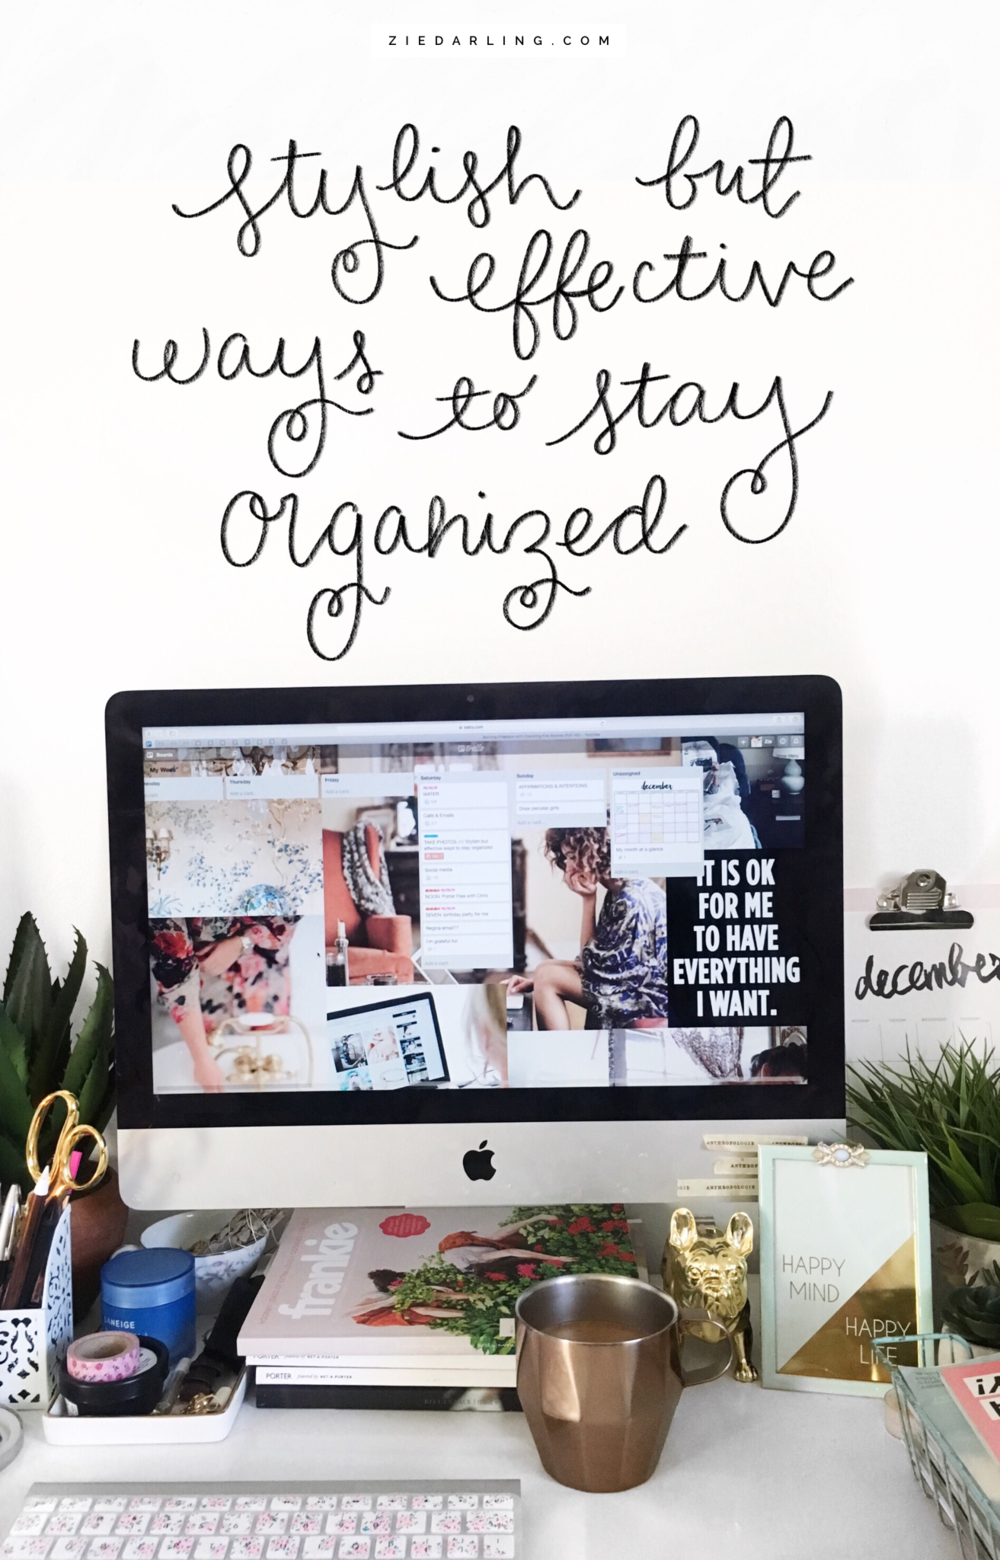 ziedarling.com | stylish but effective ways to stay organized